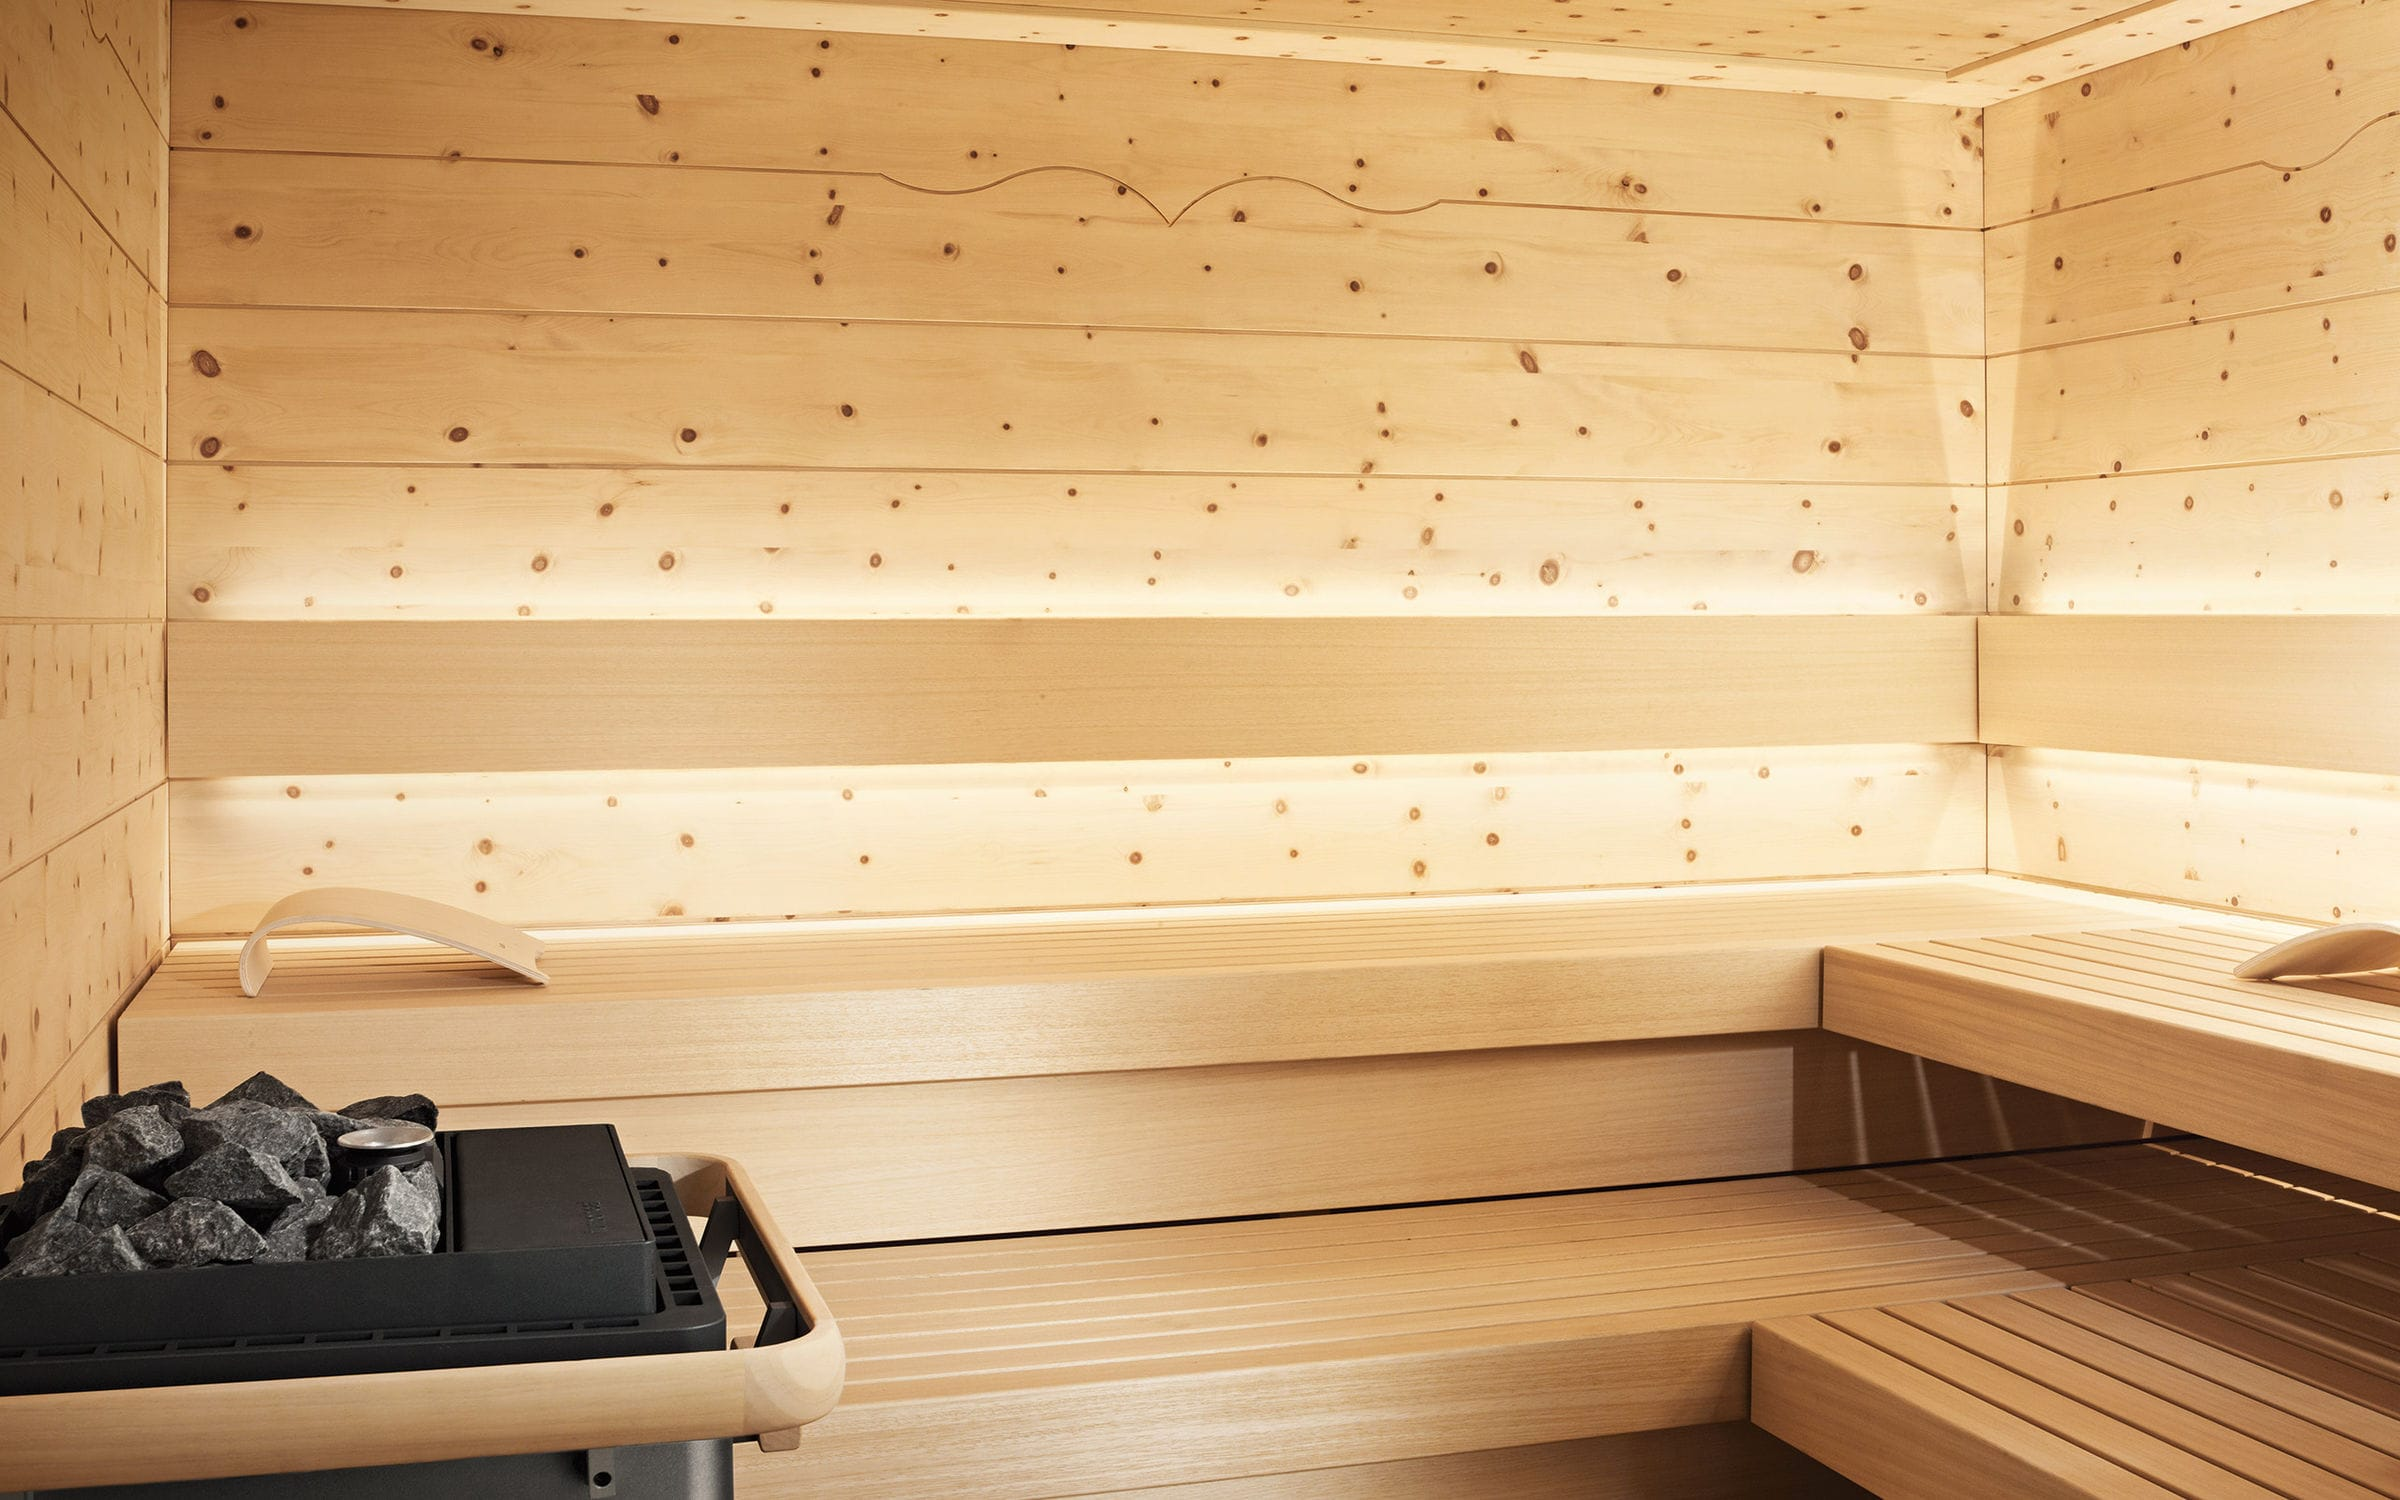 Sauna Zu Hause Home Sauna Prefab For Indoor Use Chalet Klafs